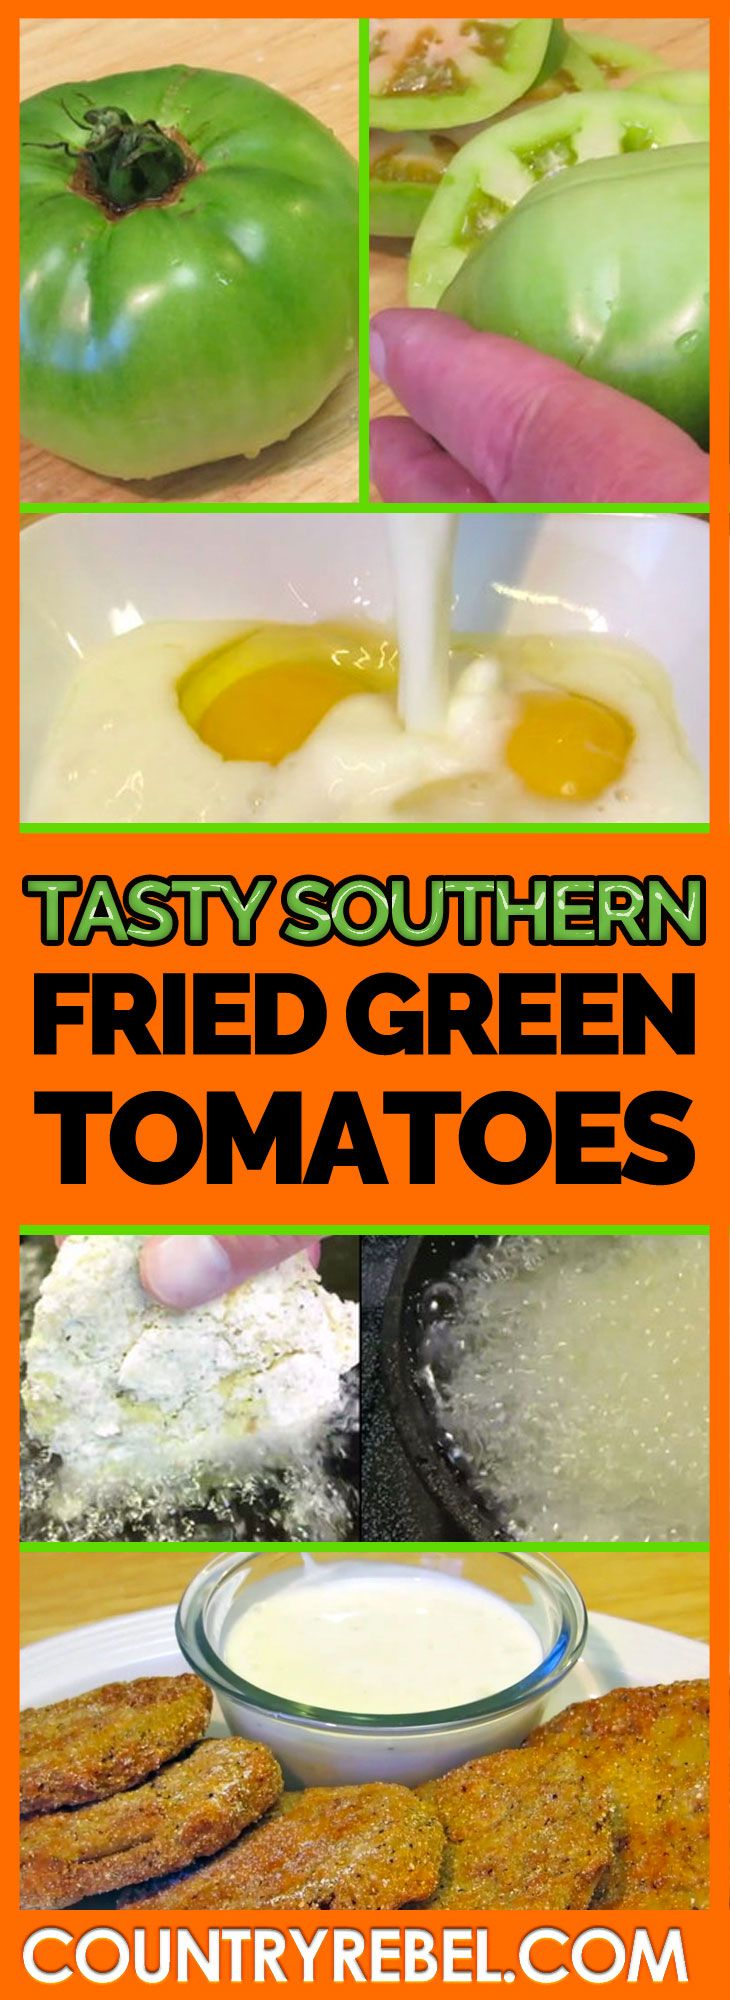 diy y 39 all need to try this tasty southern fried green tomato recipe watch in 2019 food. Black Bedroom Furniture Sets. Home Design Ideas